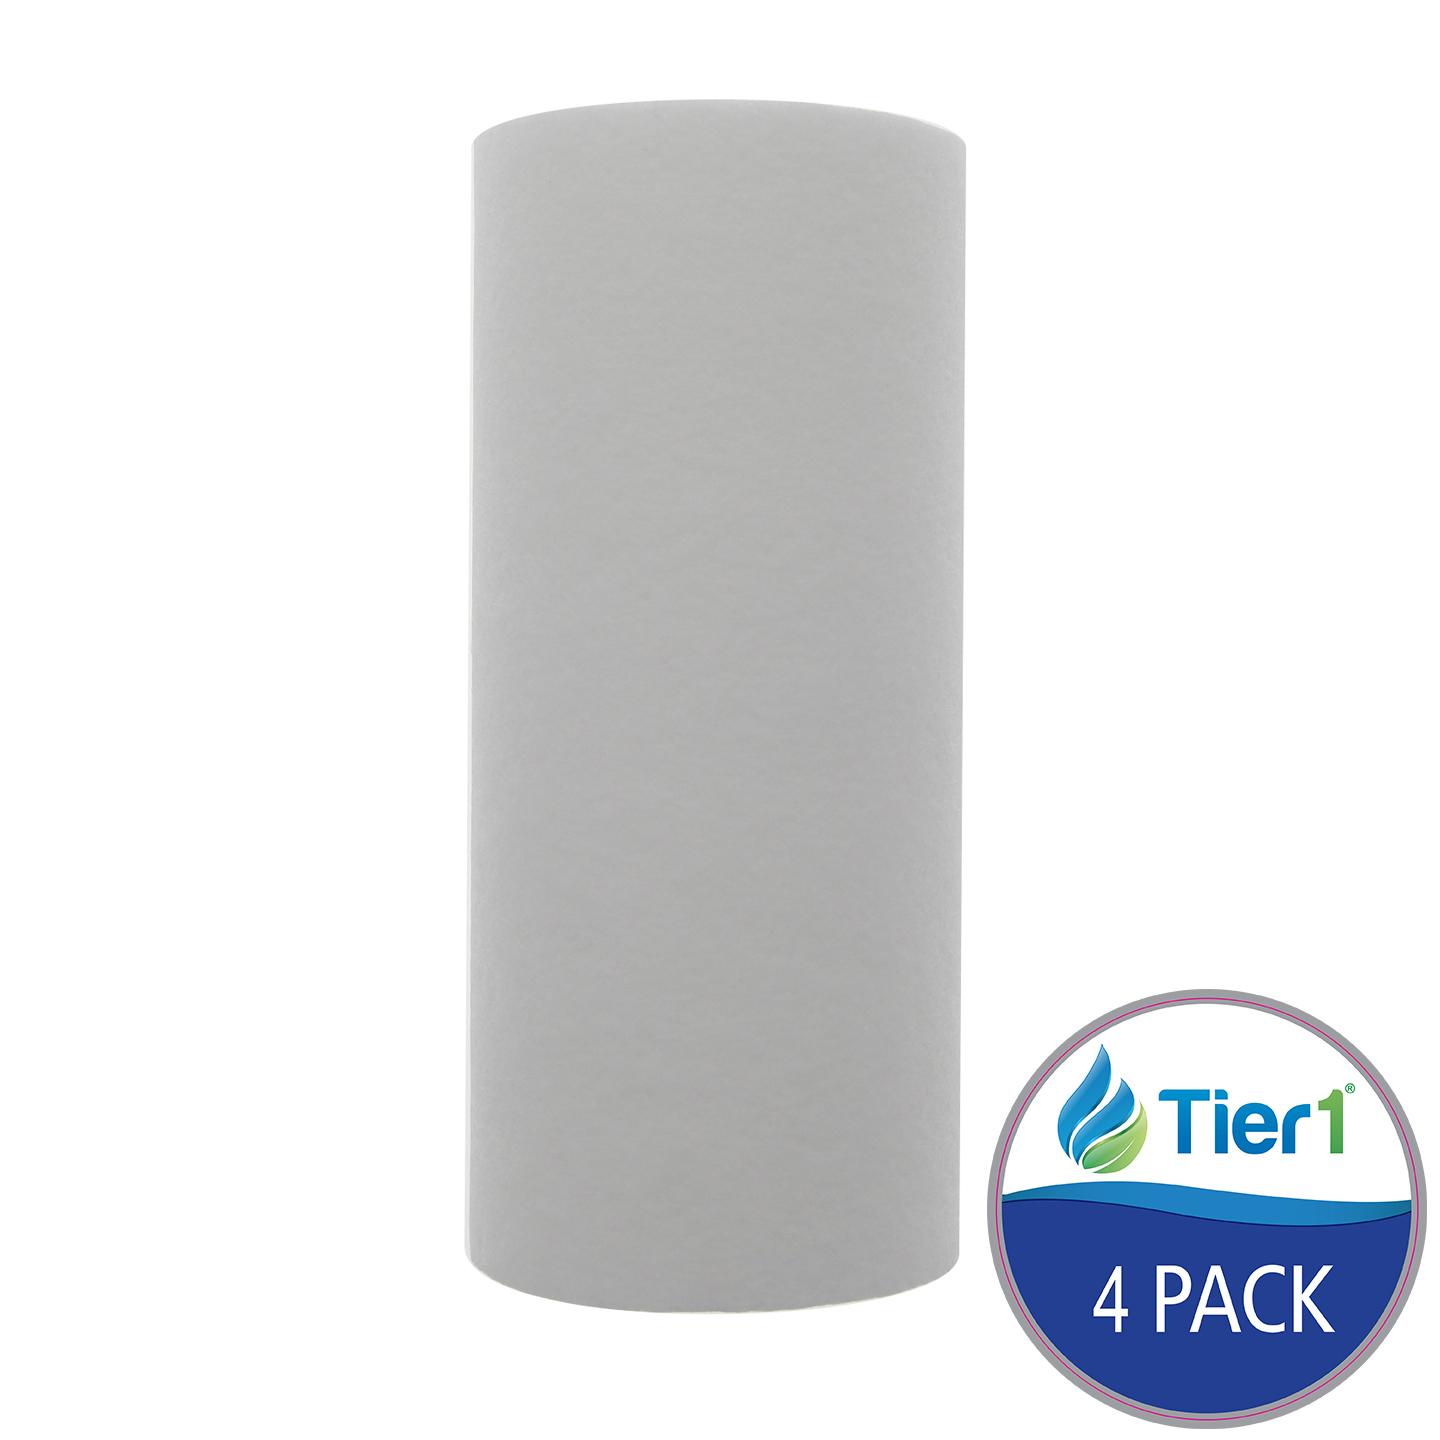 10 X 4.5 Spun Wound Polypropylene Replacement Filter by Tier1 (10 micron) (4-Pack) TIER1_P10_10BB_4_PACK